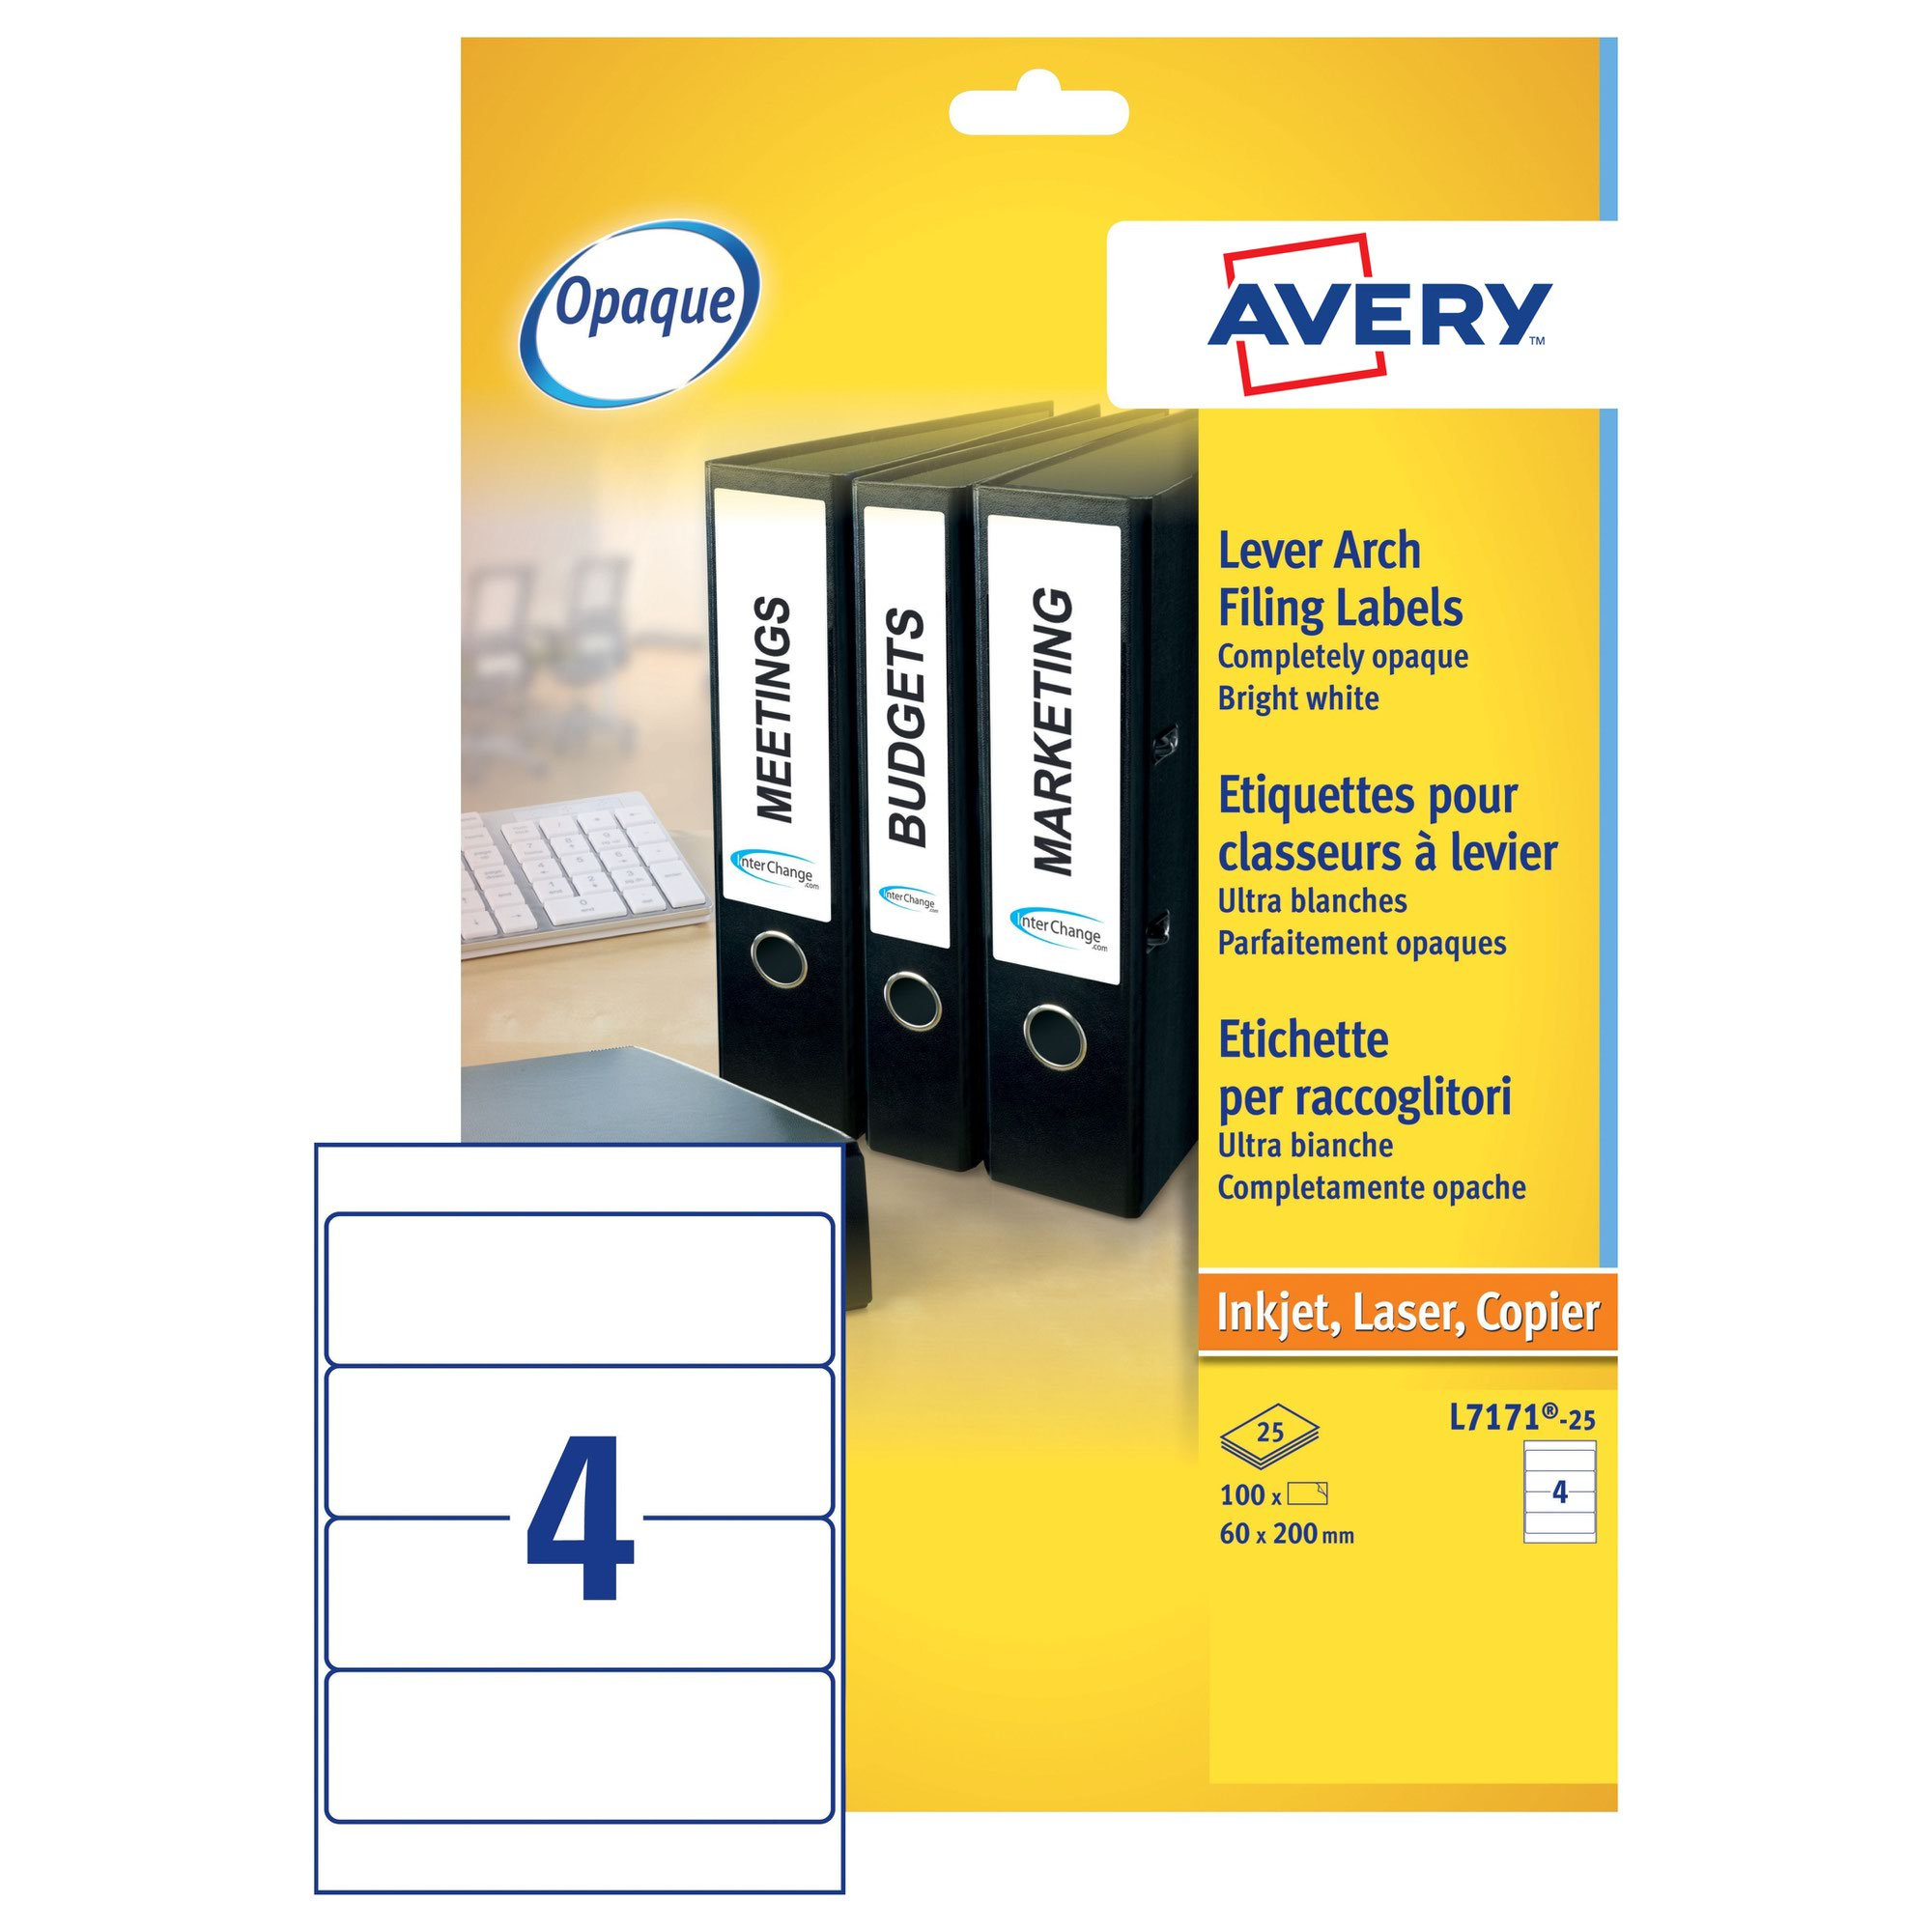 Avery Laser Lever Arch Labels 200x60mm White (25) L7171-25